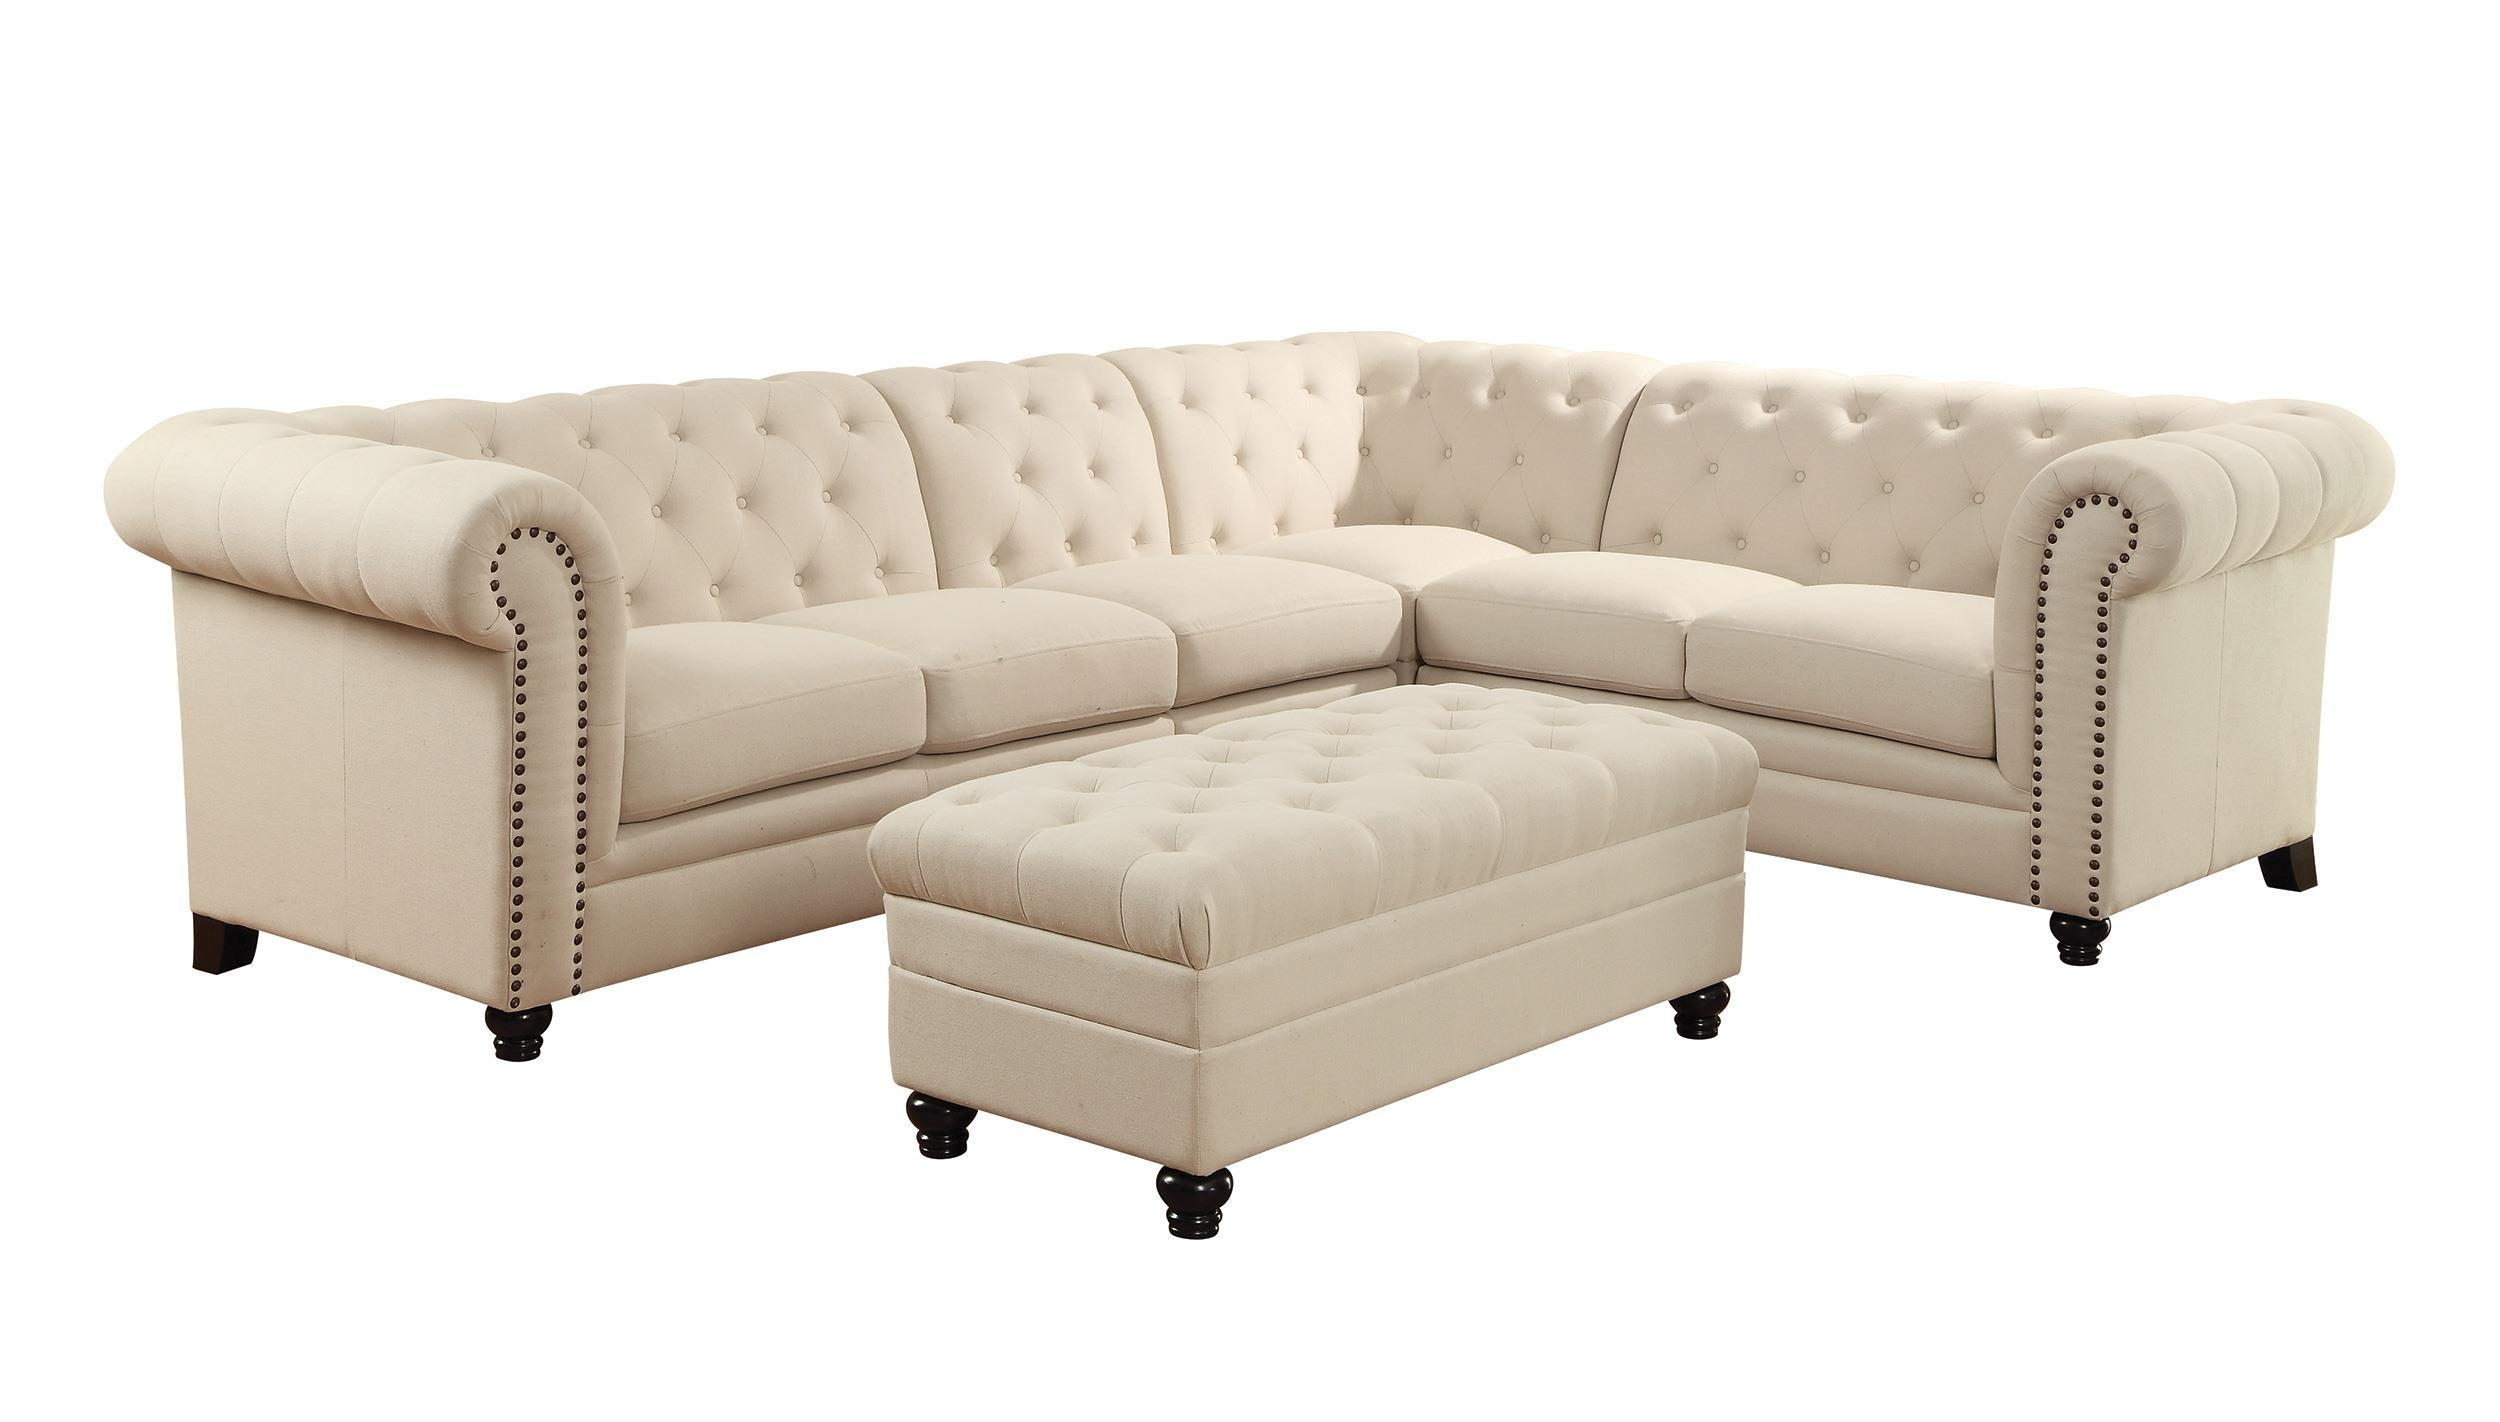 Sofas Center : Grey Tufted Sleeper Sofa Velvet Sofanovogratz Ava Pertaining To Tufted Sleeper Sofas (View 12 of 20)